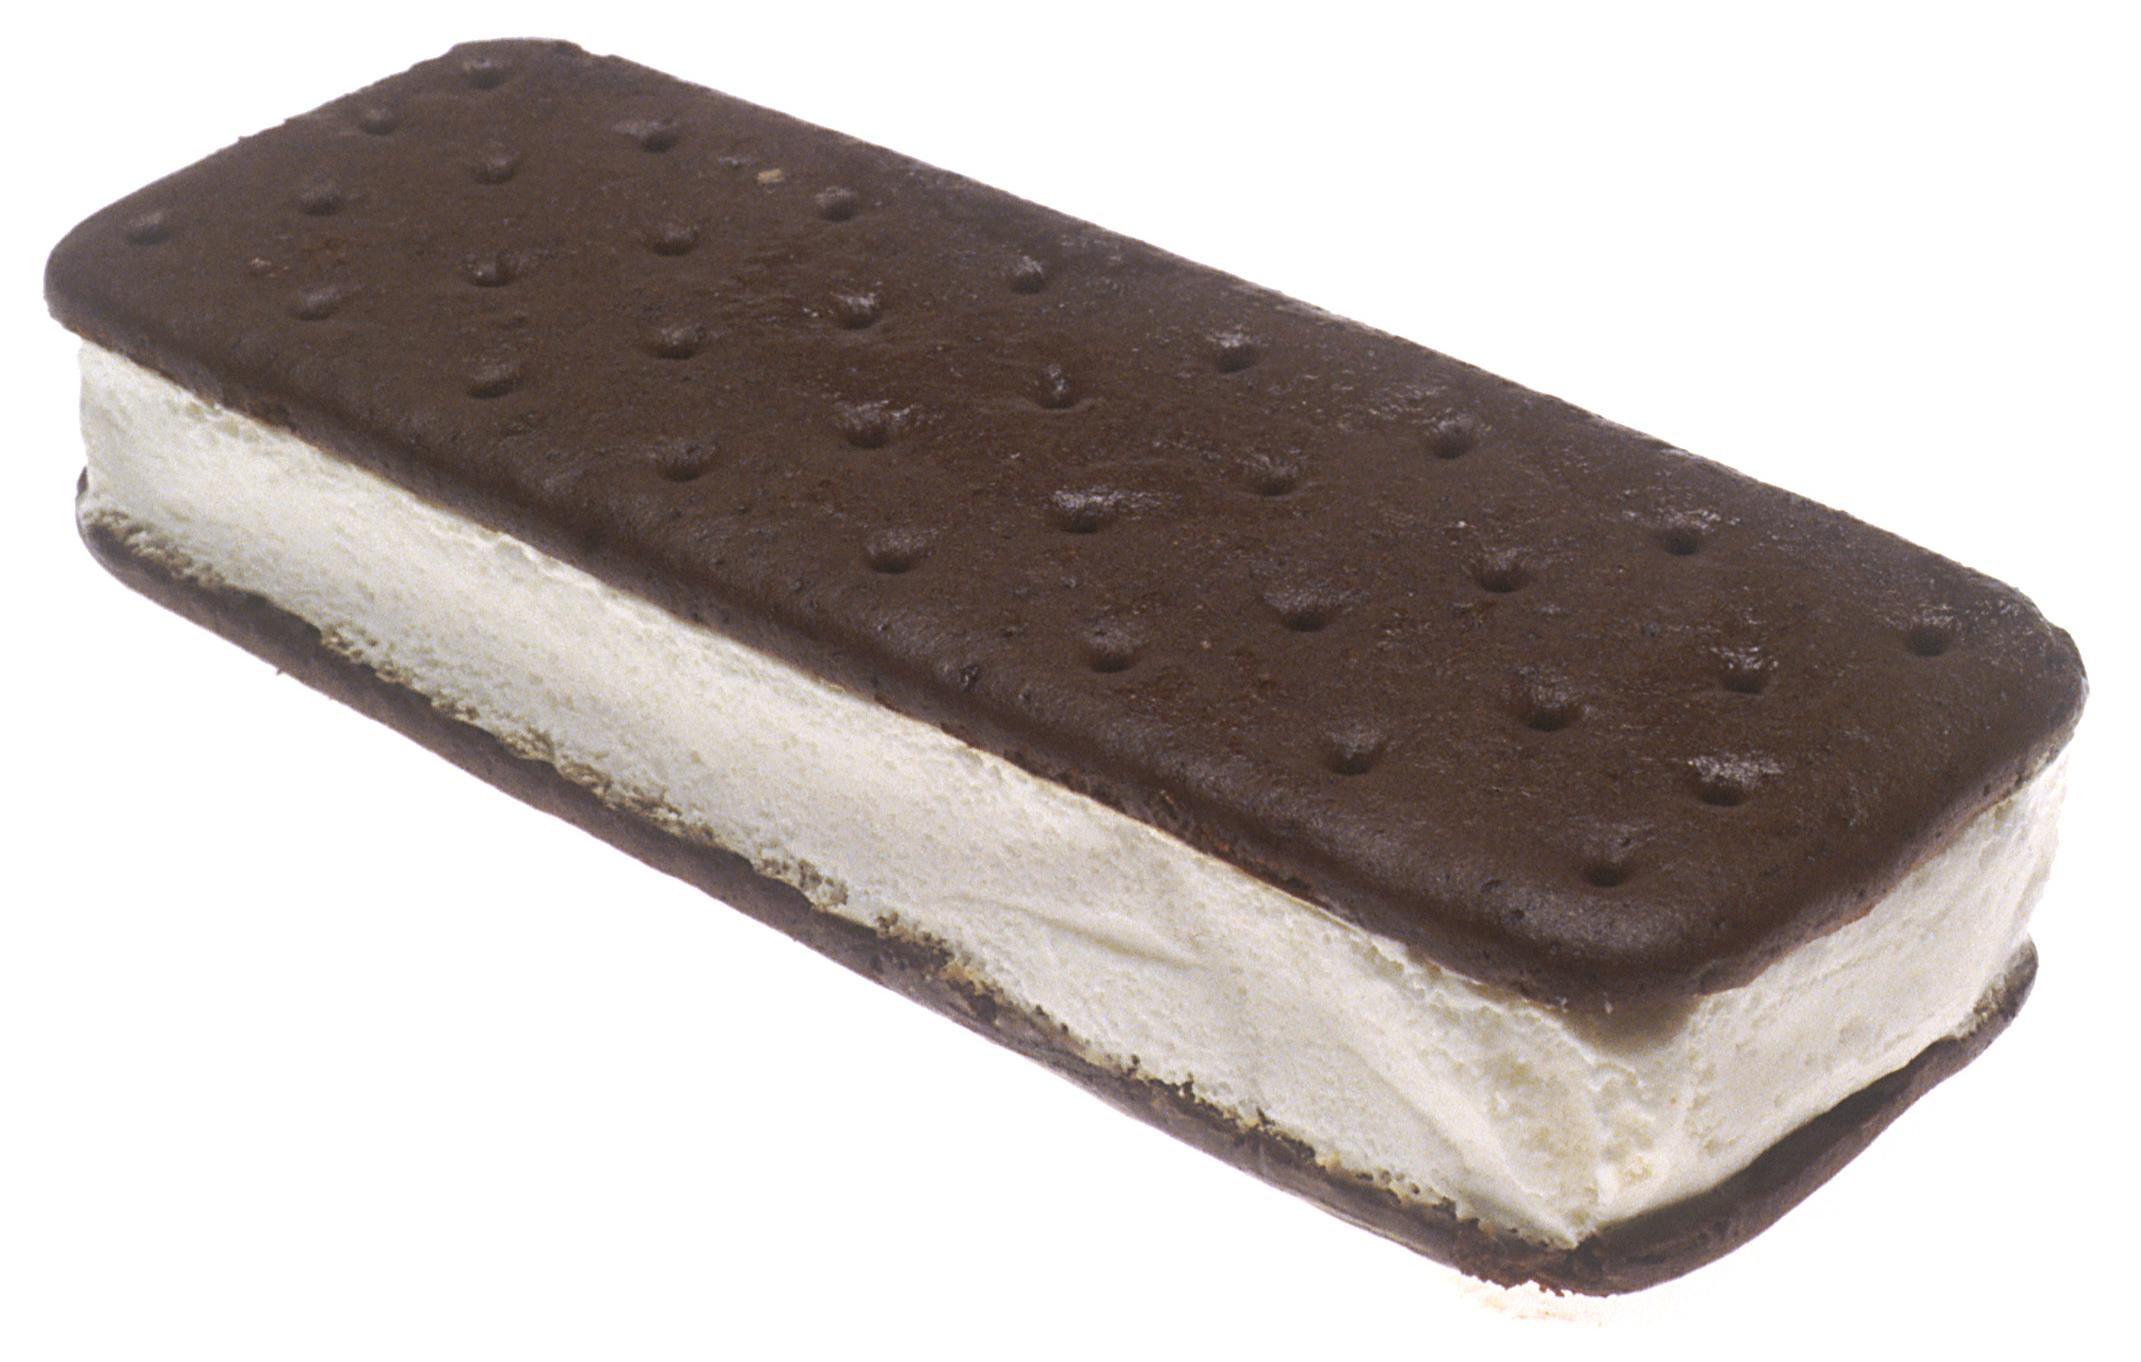 ICE CREM SANDWICH